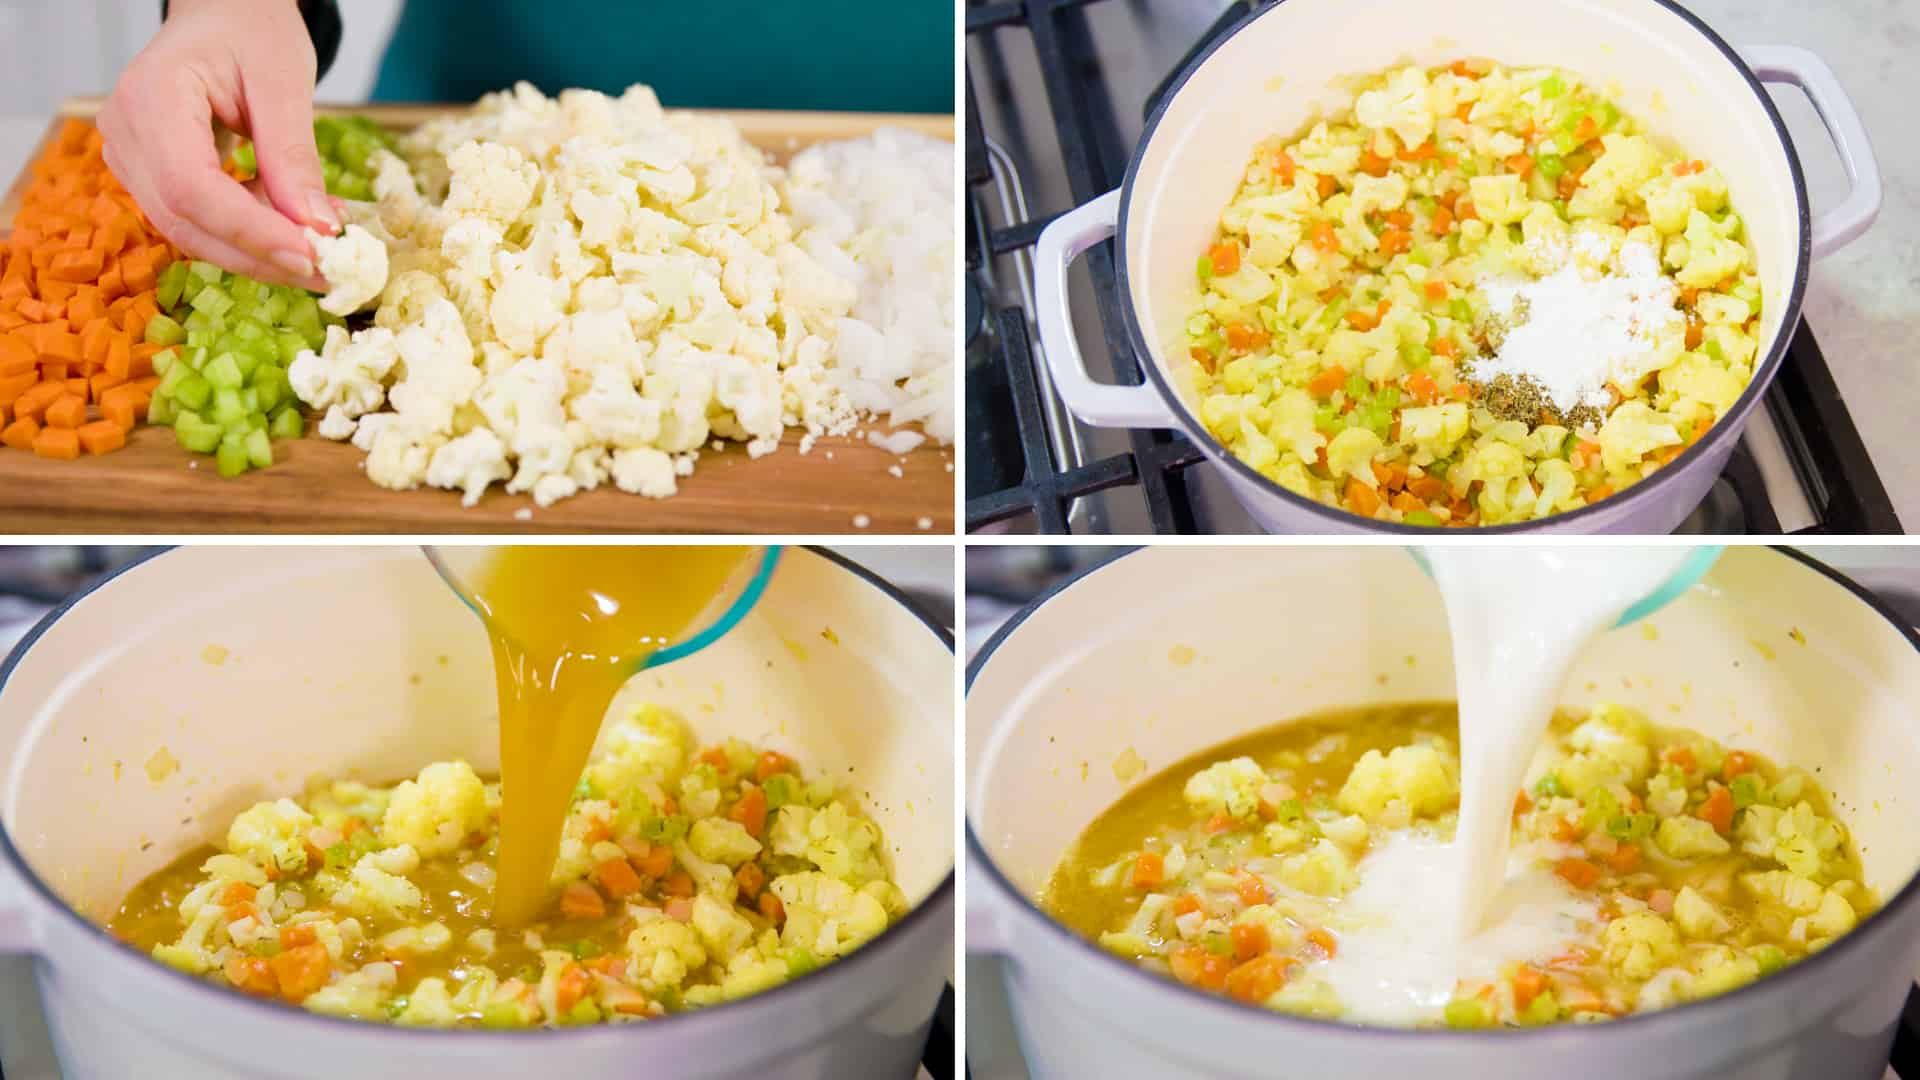 How to Make Cauliflower Soup